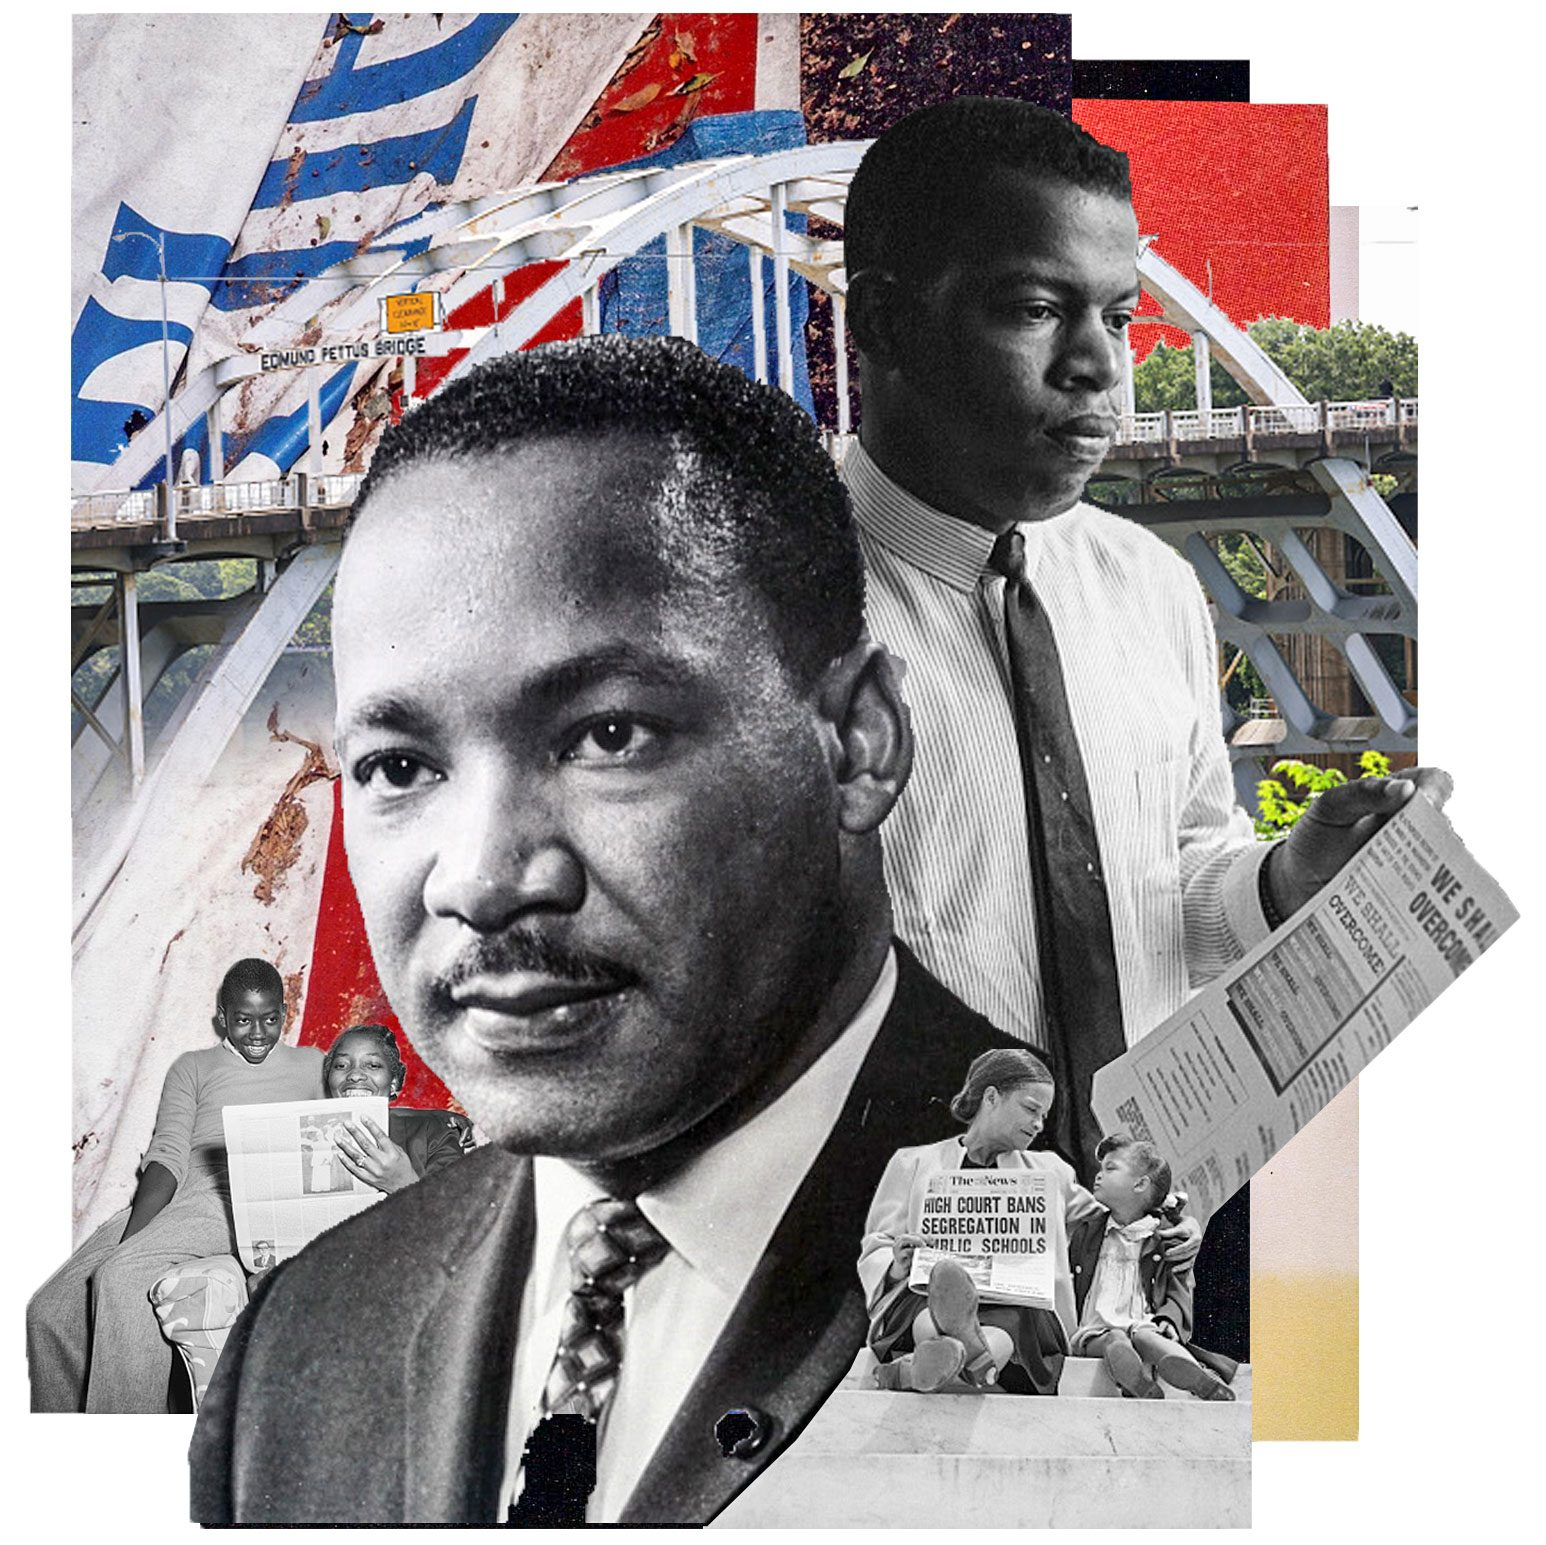 civil rights collage featuring Martin Luther King Jr. and Rep. John Lewis